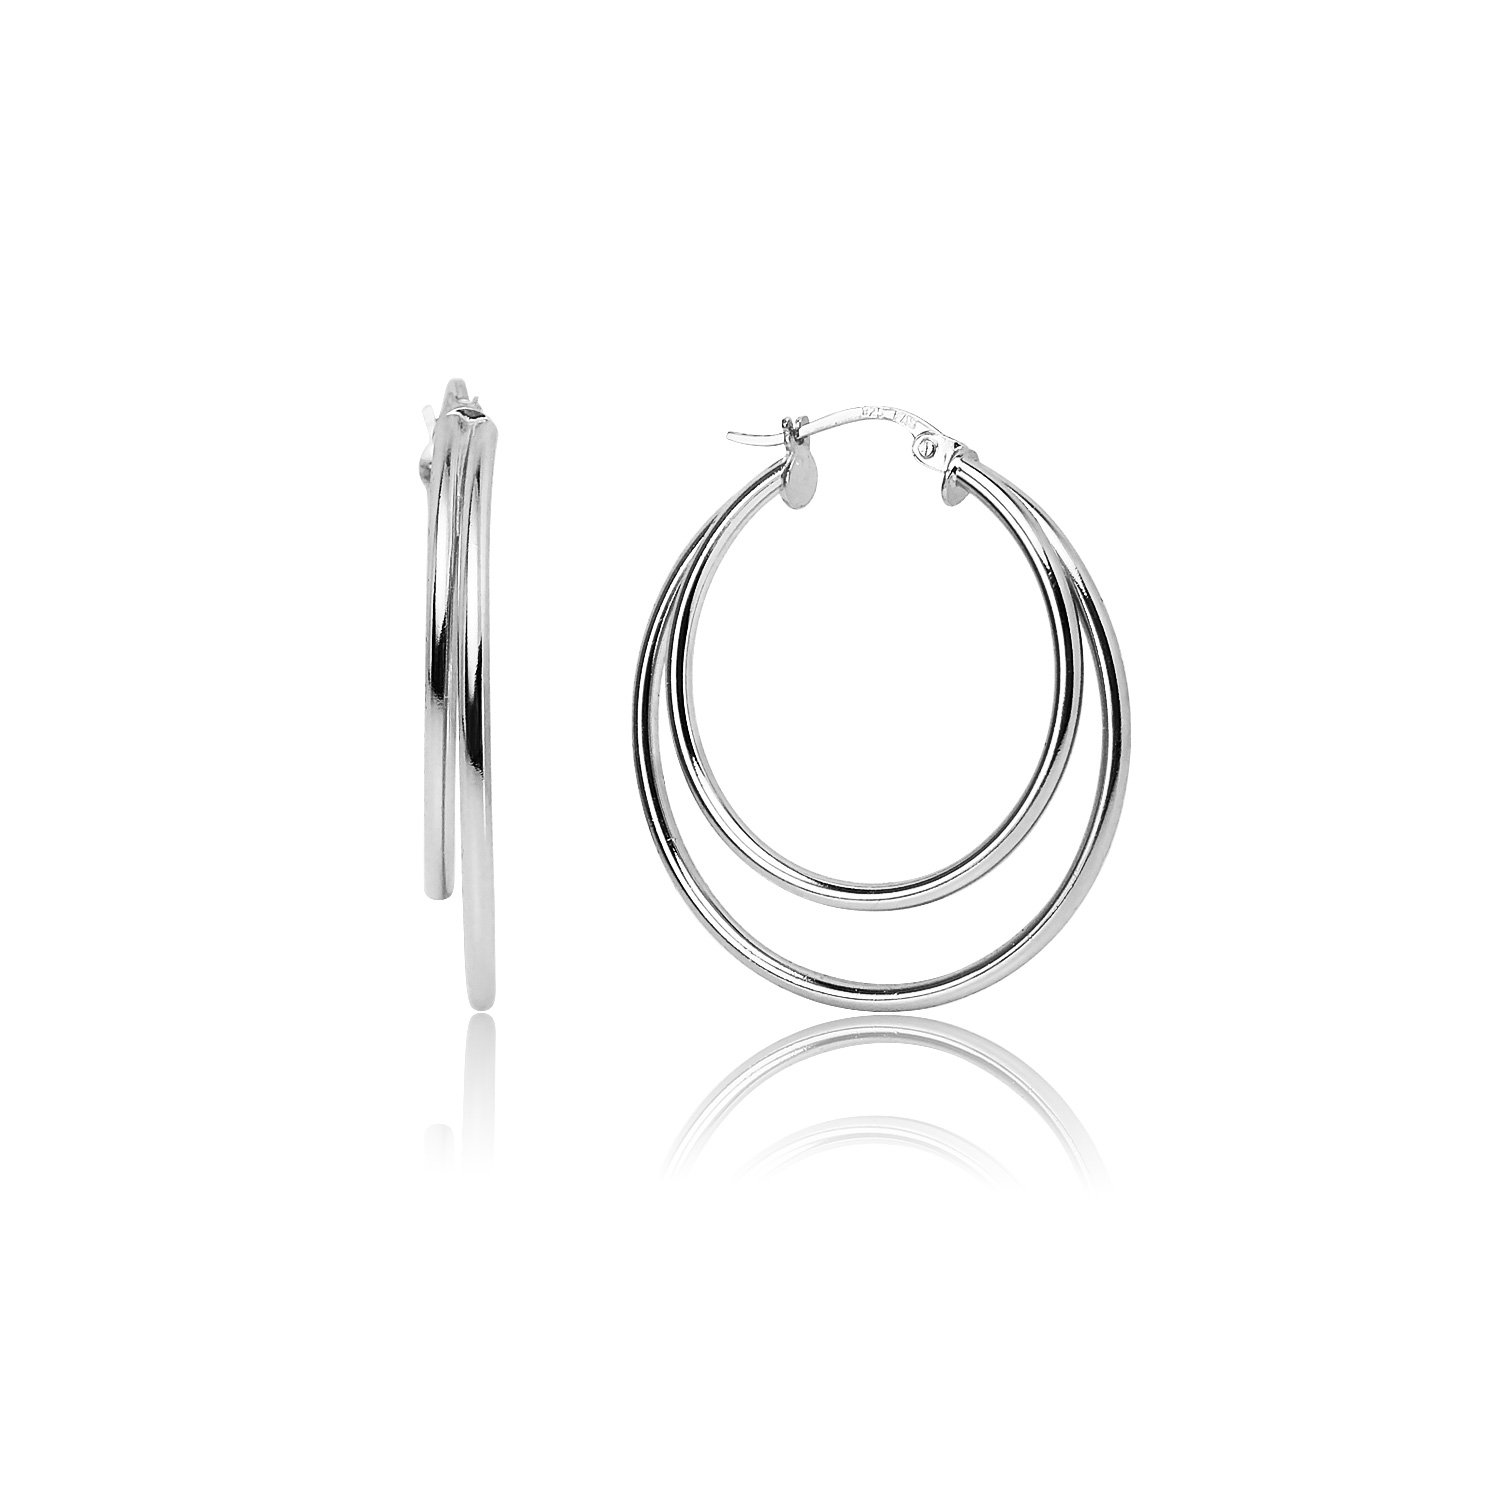 LOVVE Sterling Silver High Polished 30mm Double Circle Round Click-Top Hoop Earrings